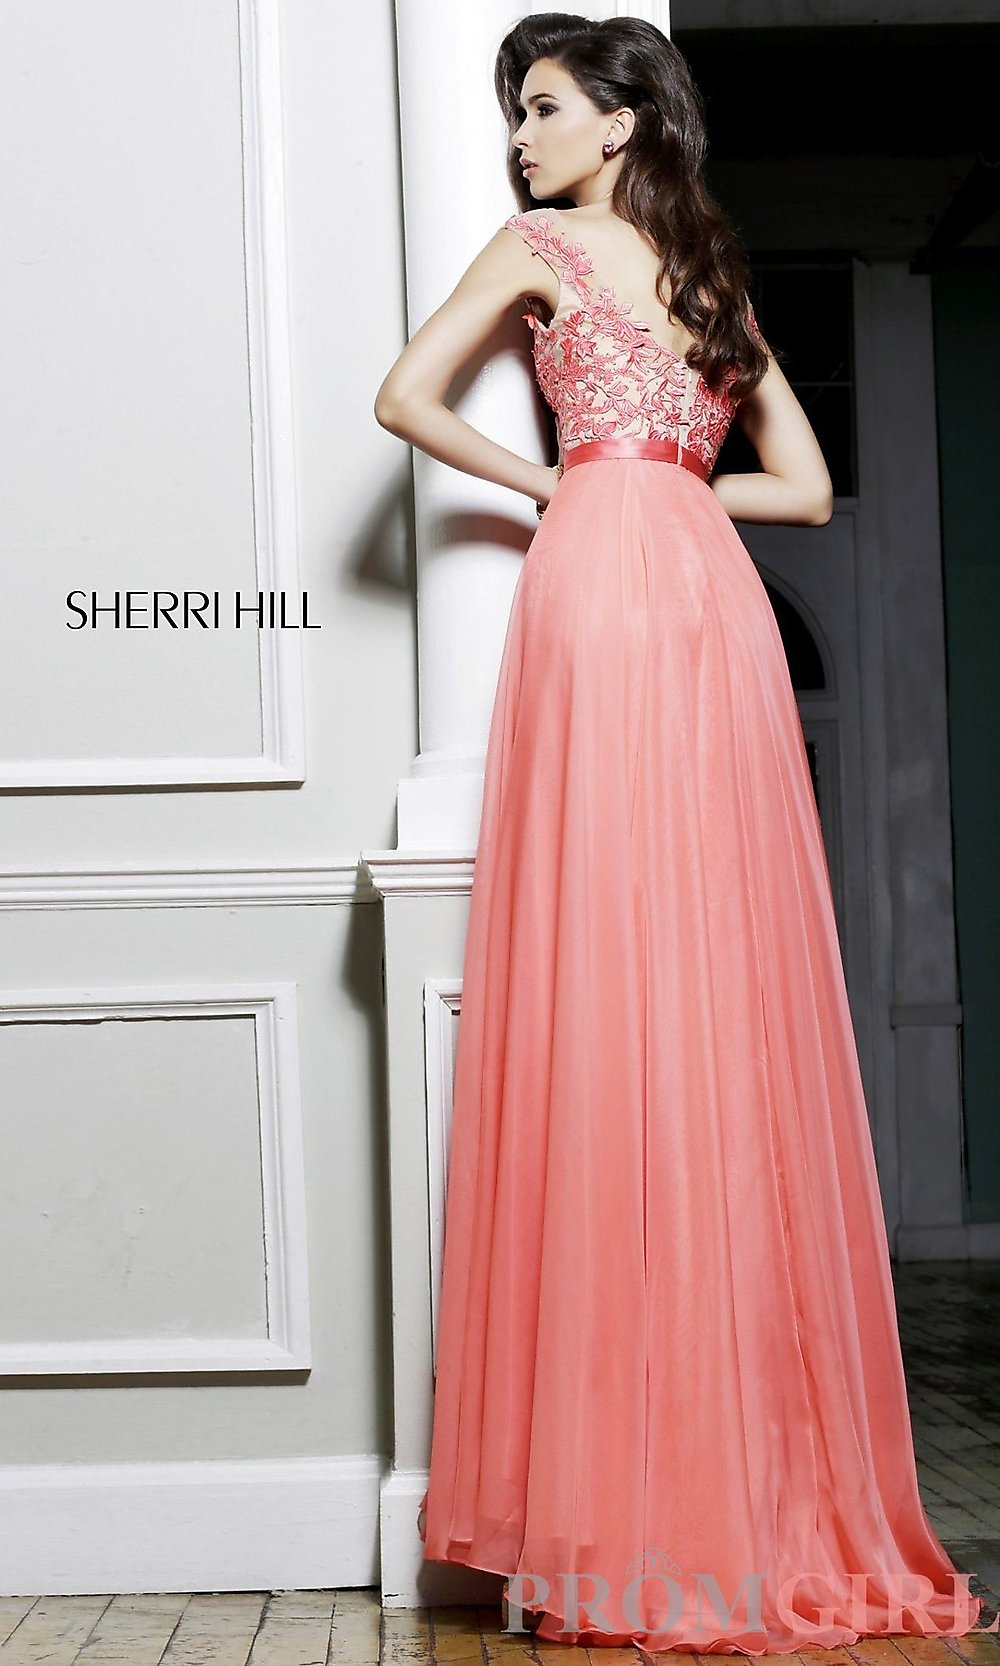 Latest Fancy Gowns, Prom and Cocktail dresses for Weddings and Parties 2014-2015 (5)